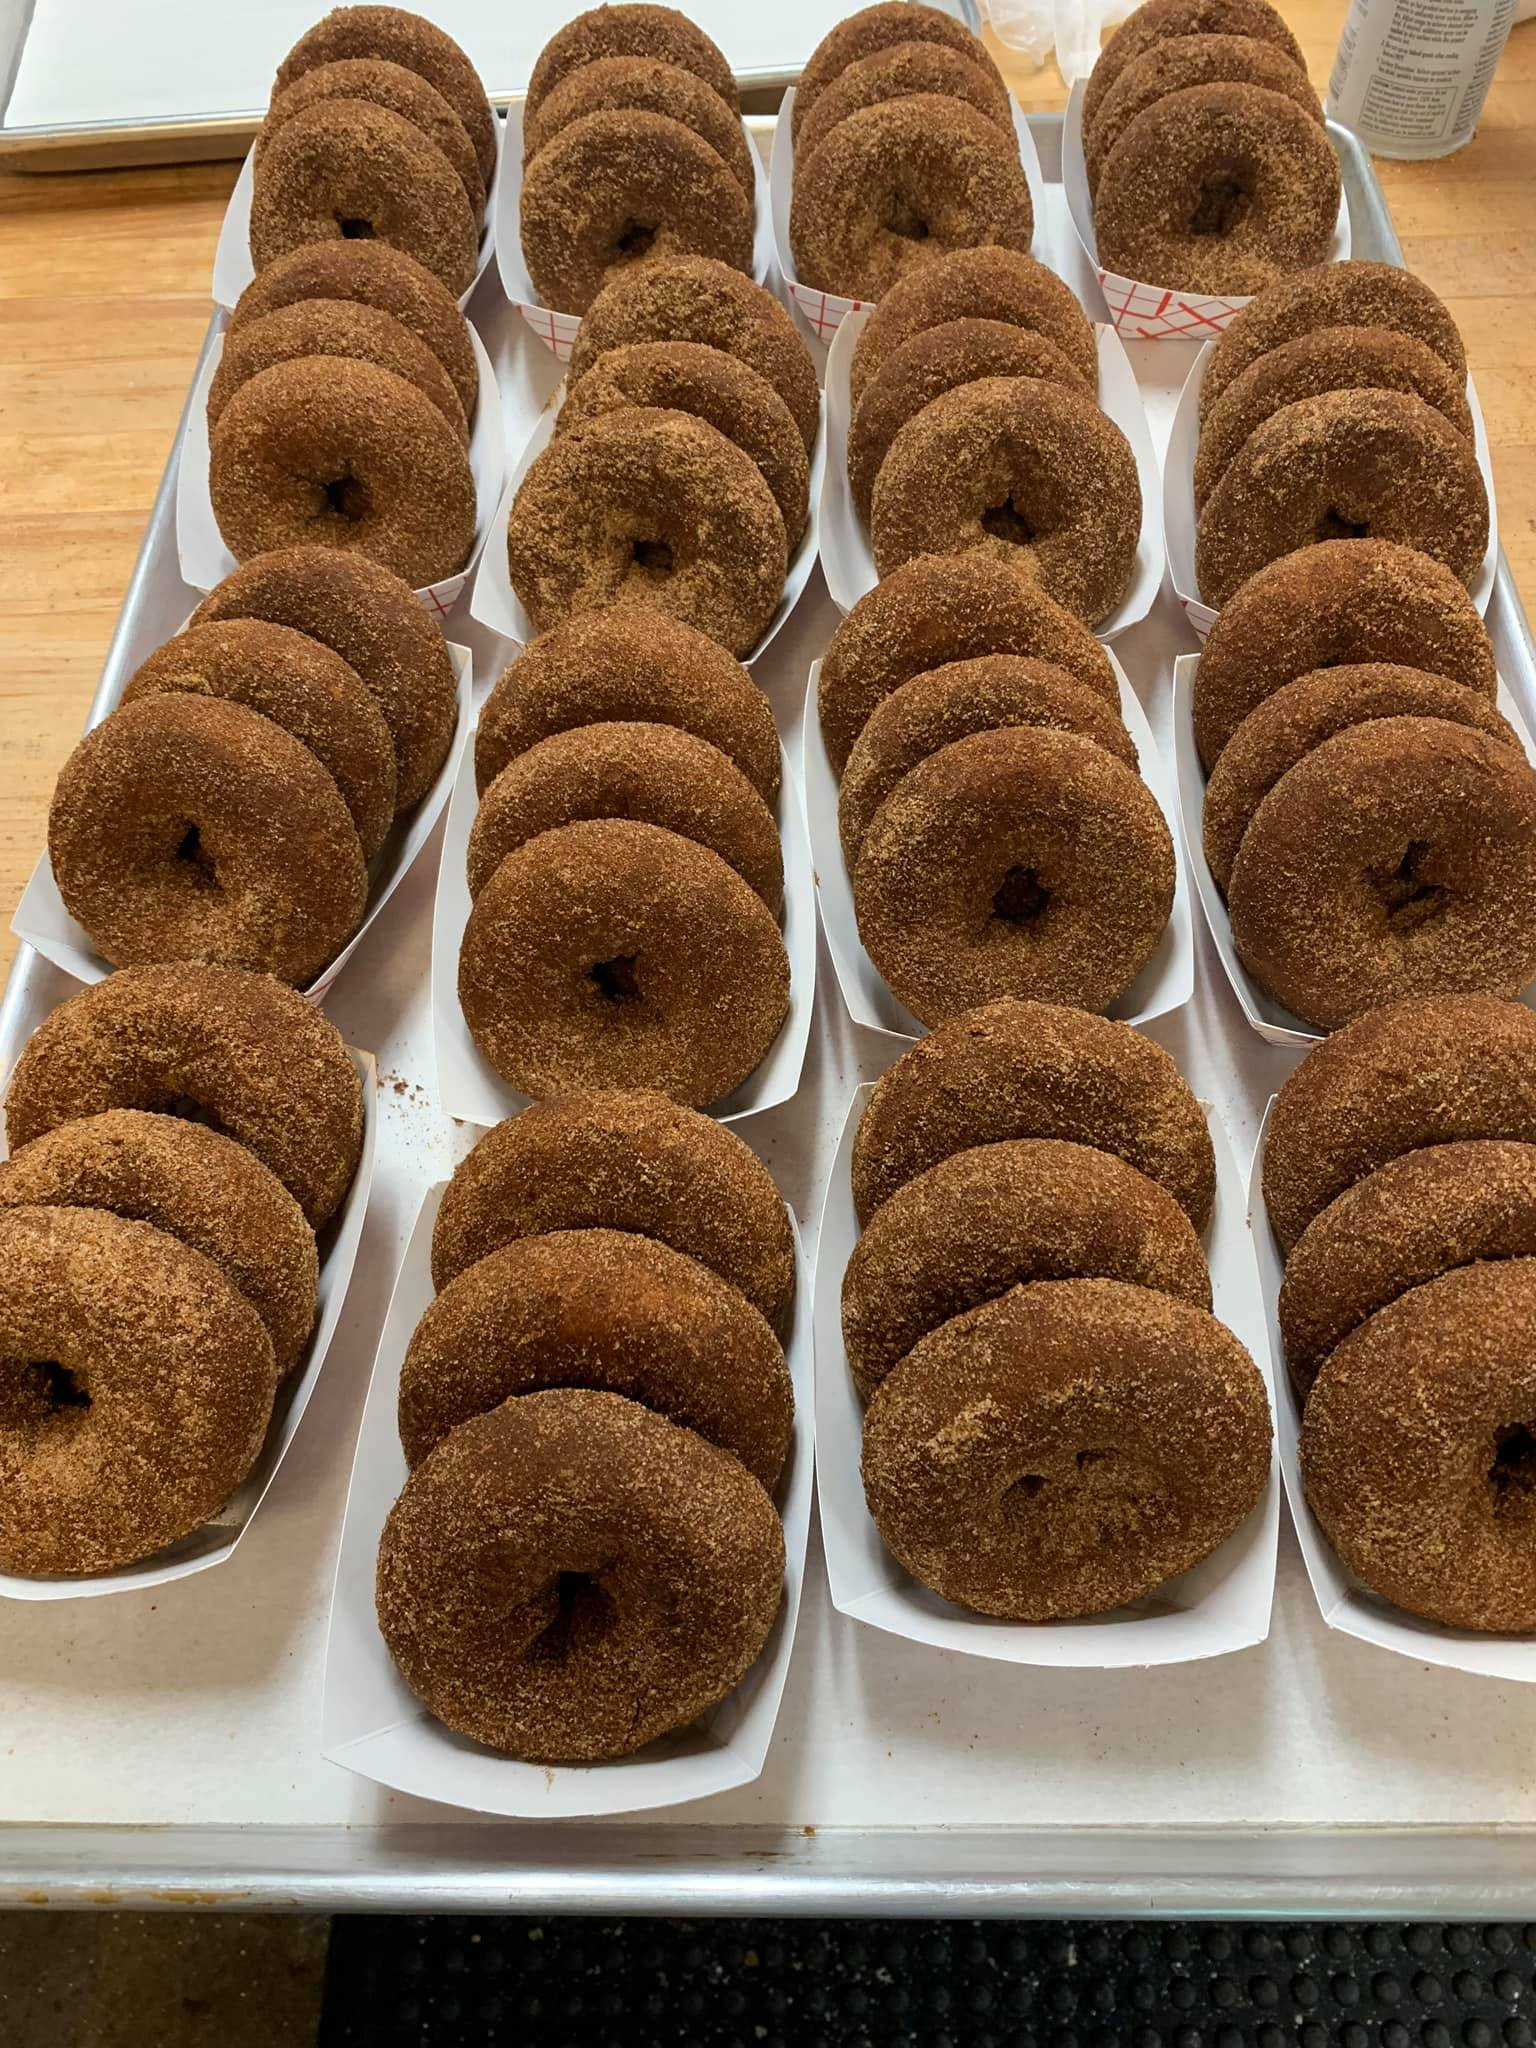 Apple Cider Donuts at Emery's Farm in New Egypt, NJ